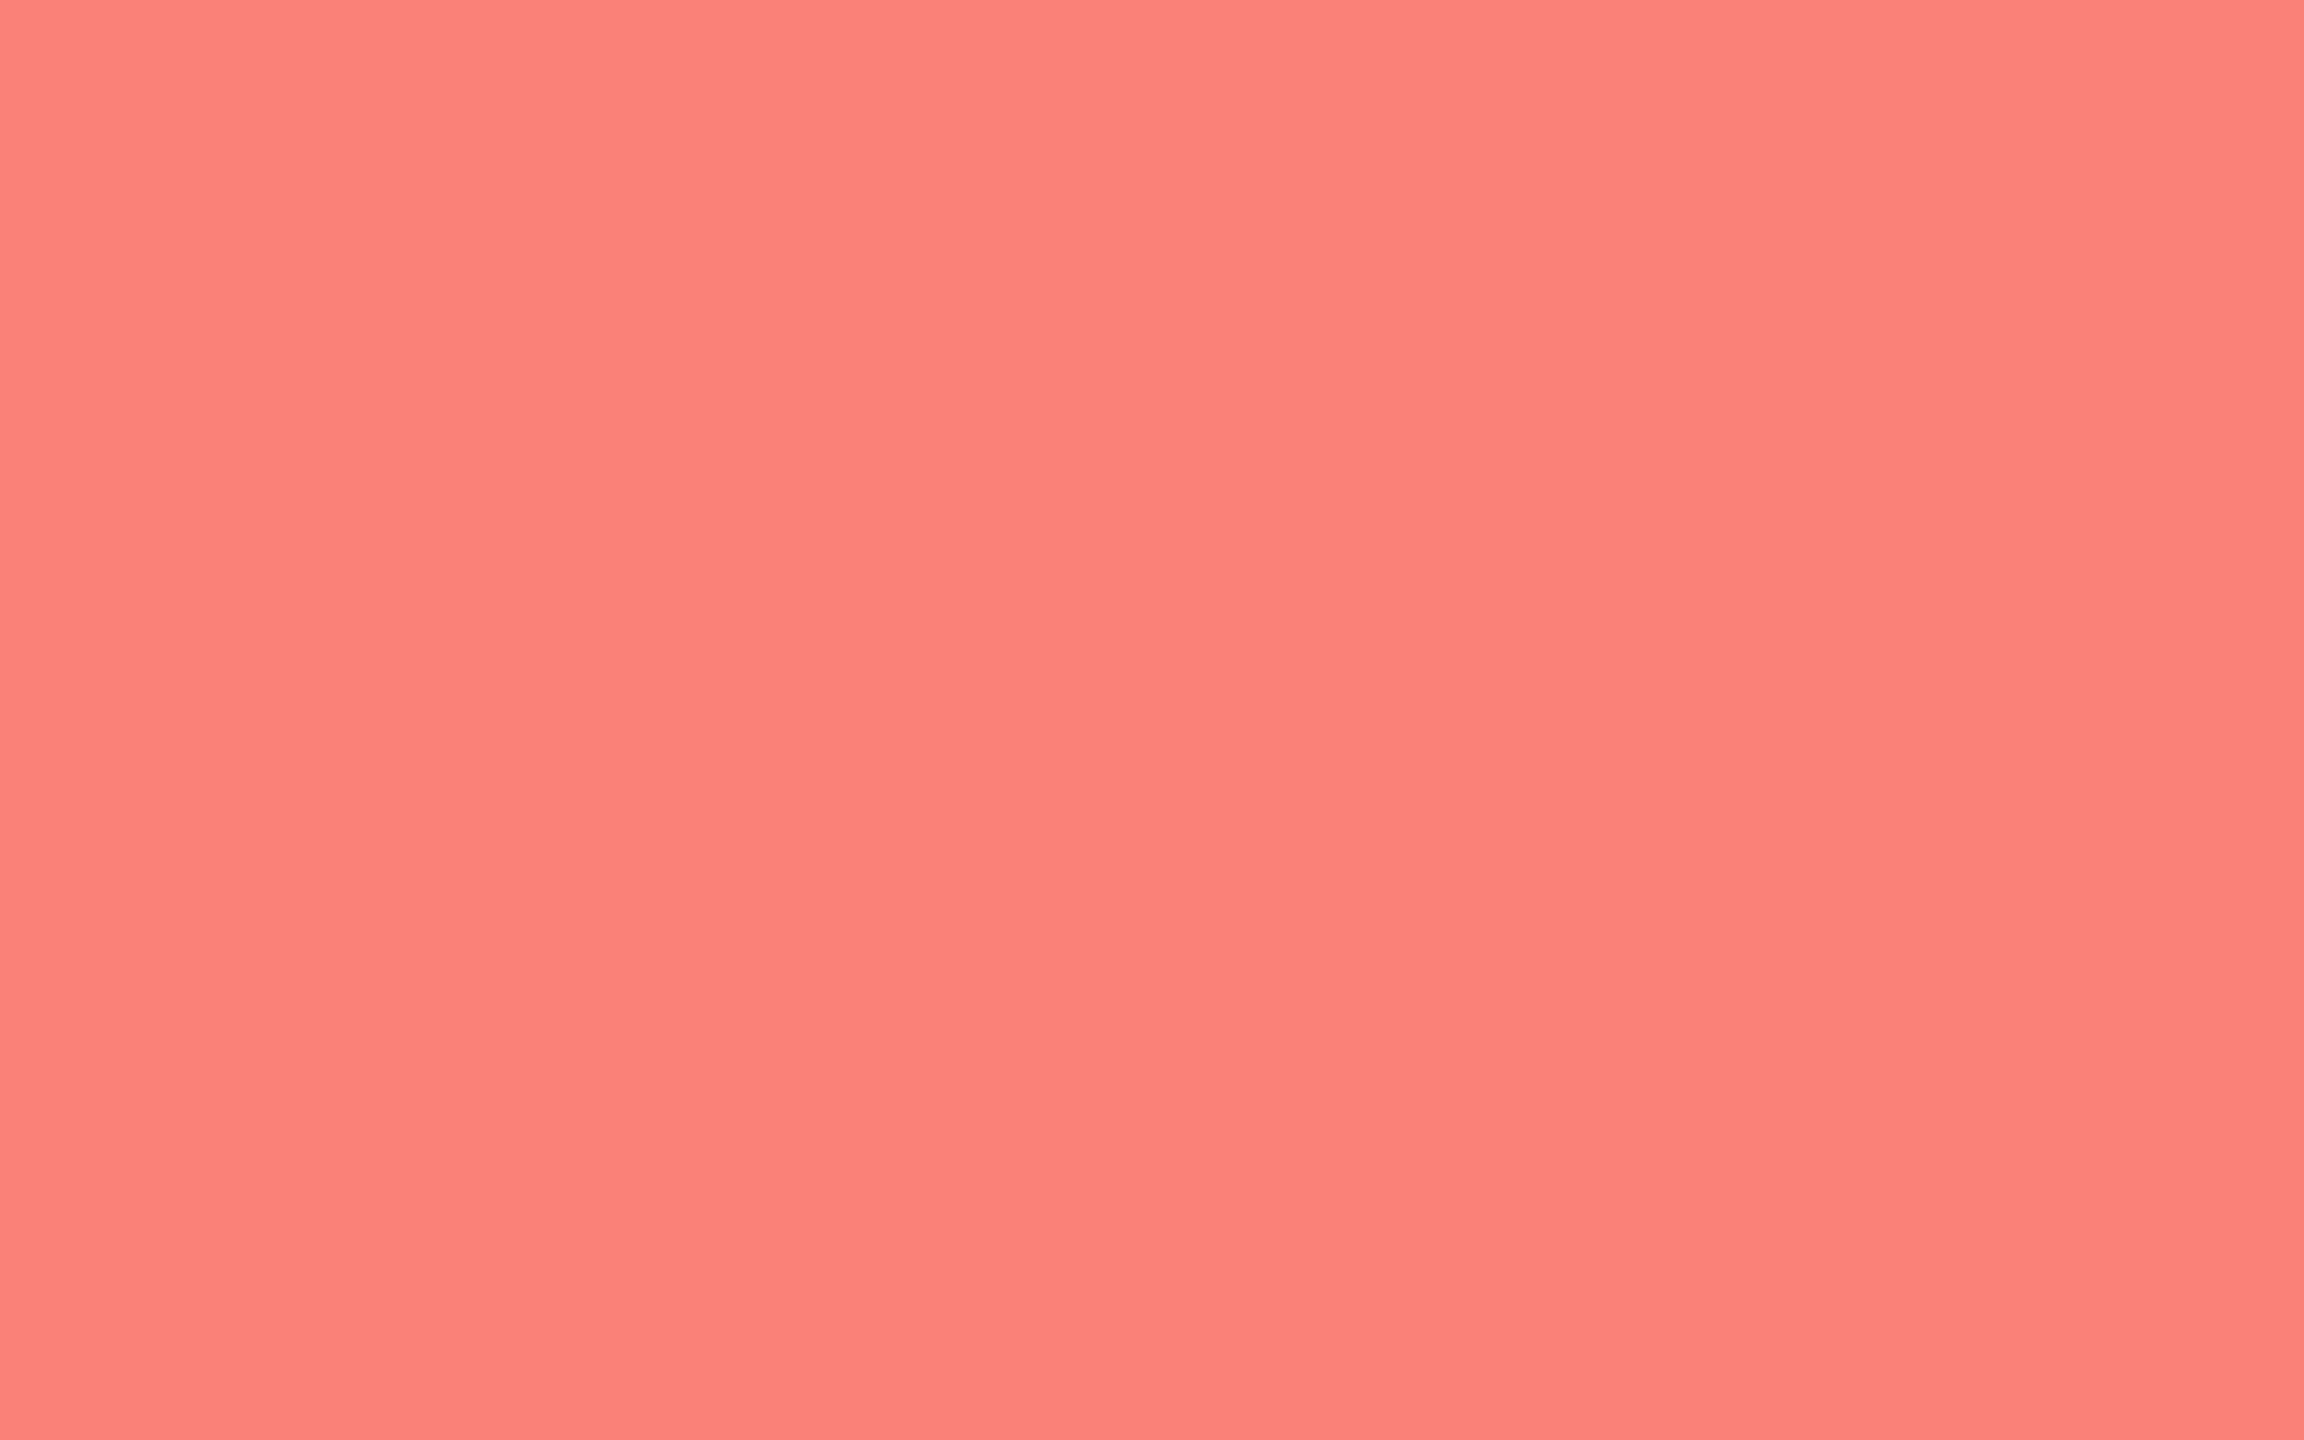 2304x1440 Coral Pink Solid Color Background